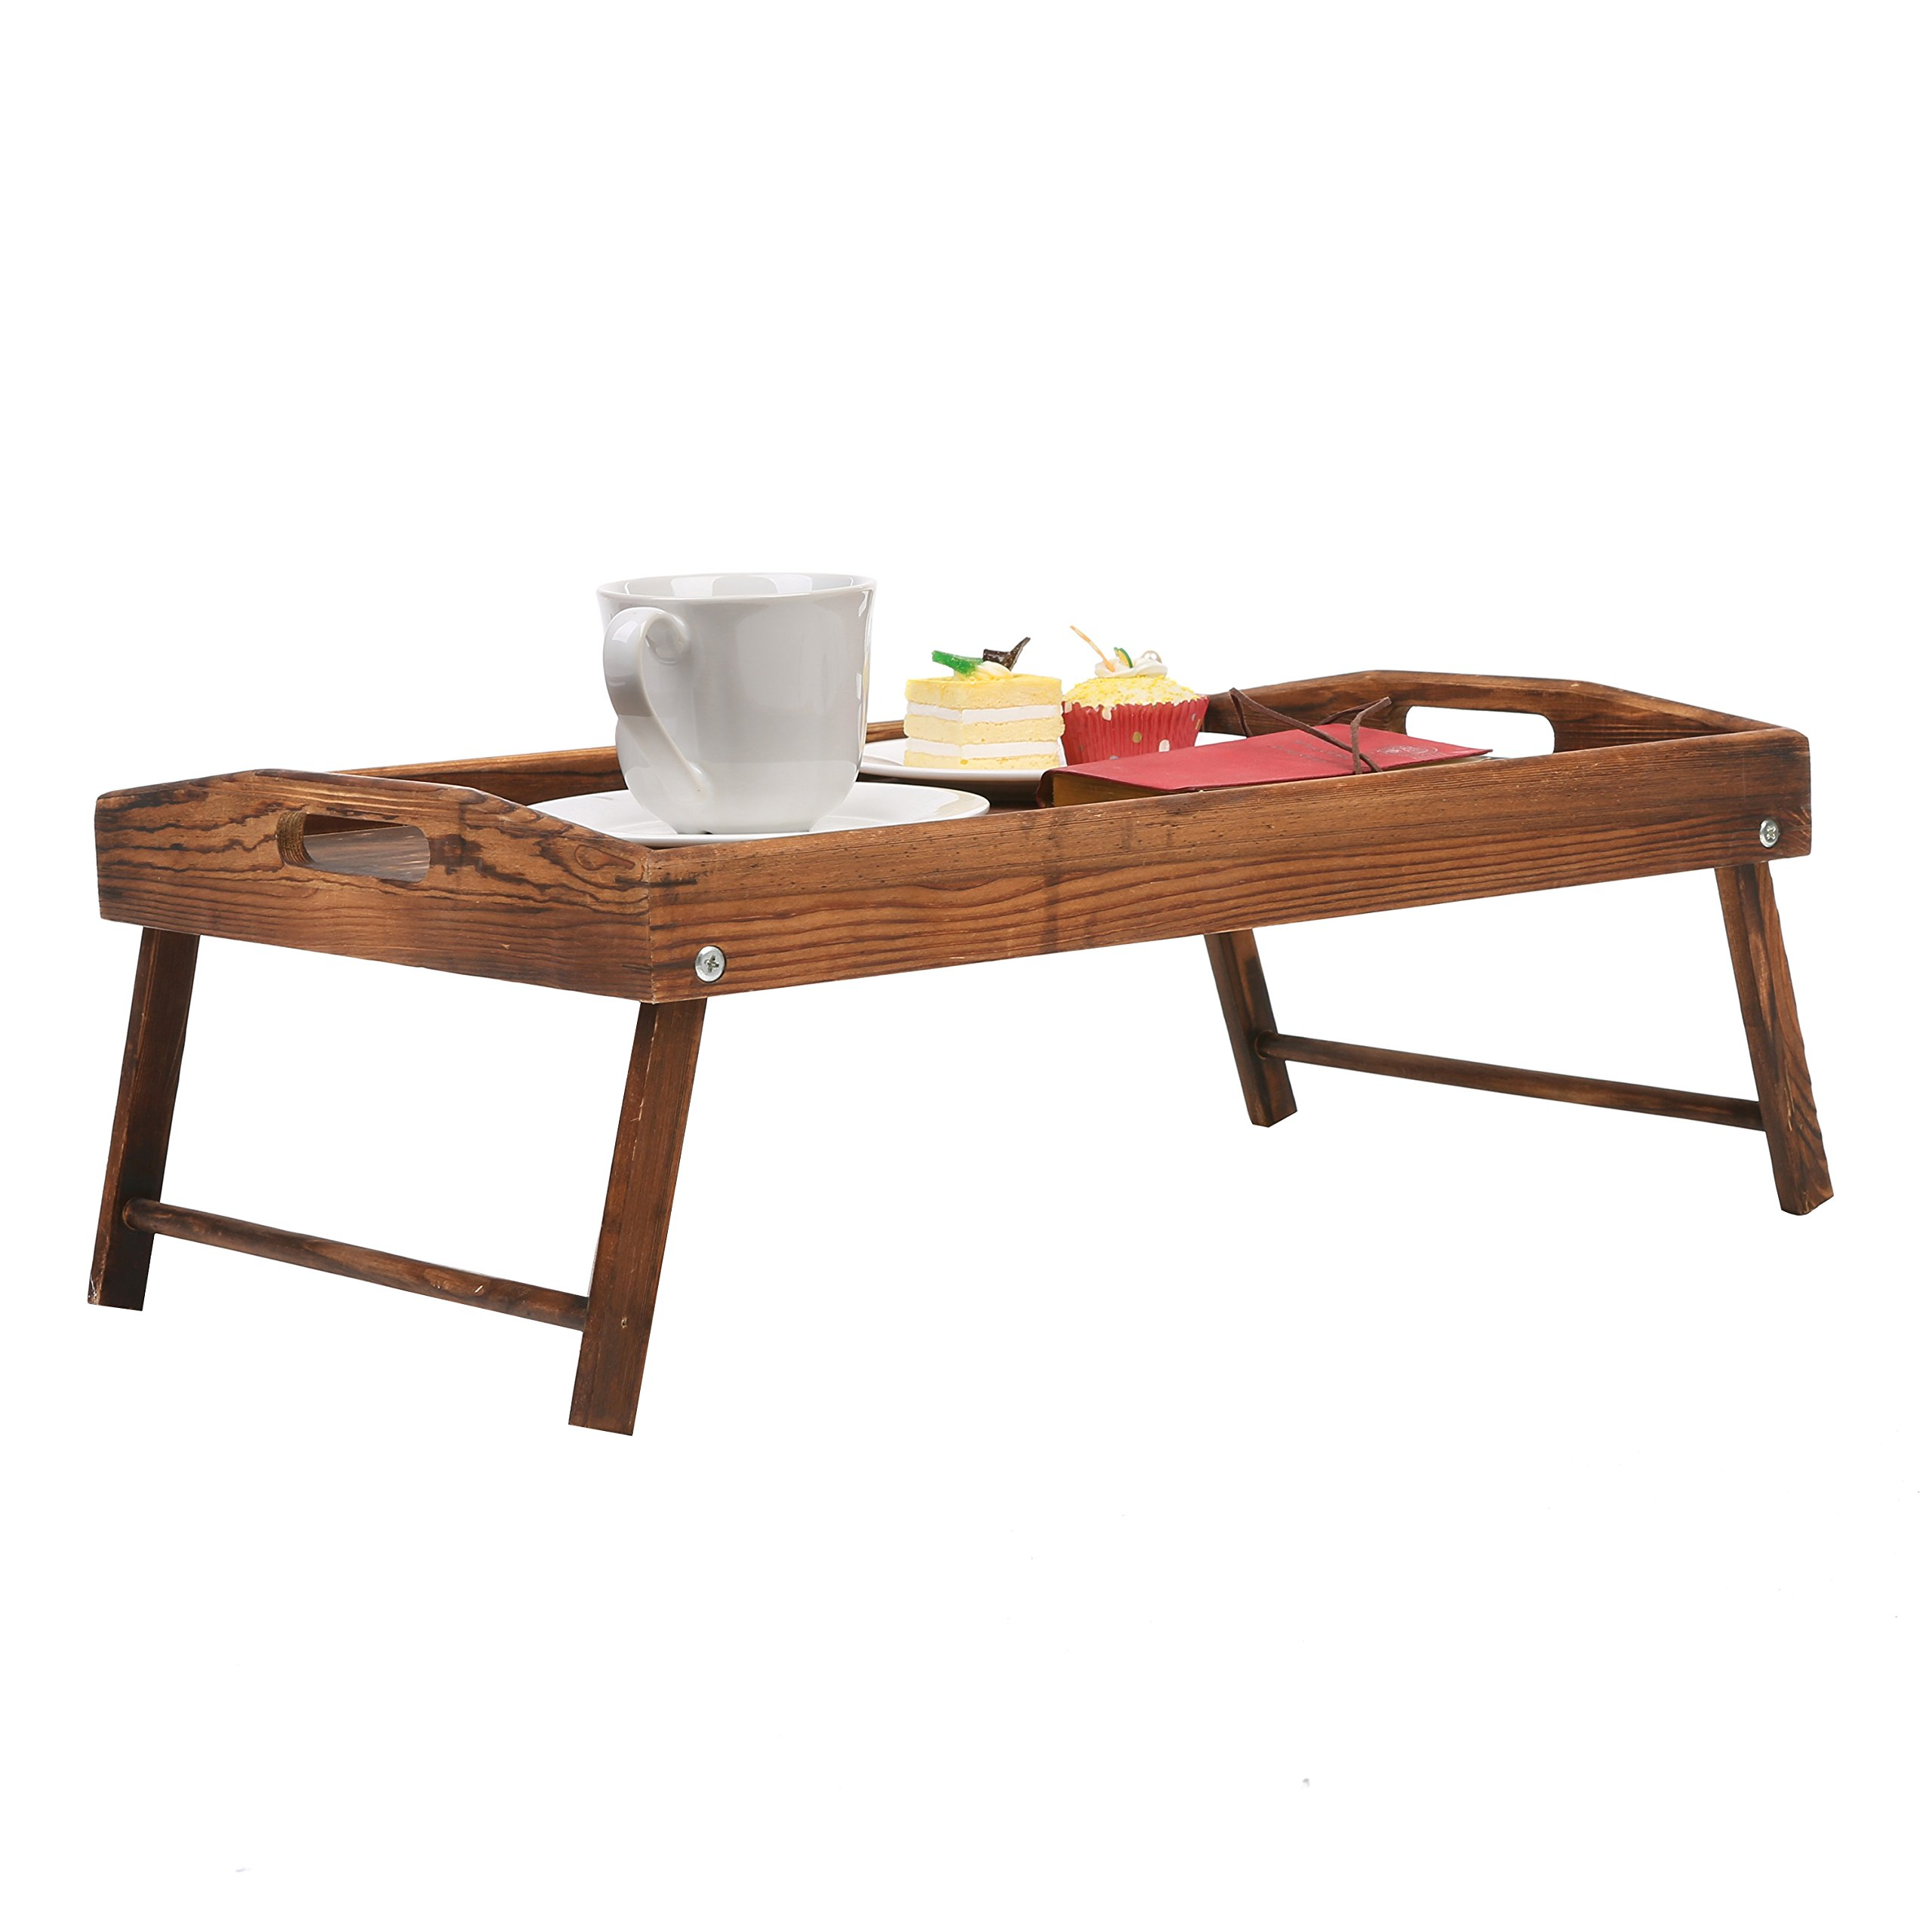 Country Rustic Torched Wood Food Serving Tray, Breakfast in Bed Table with Folding Legs by MyGift (Image #5)